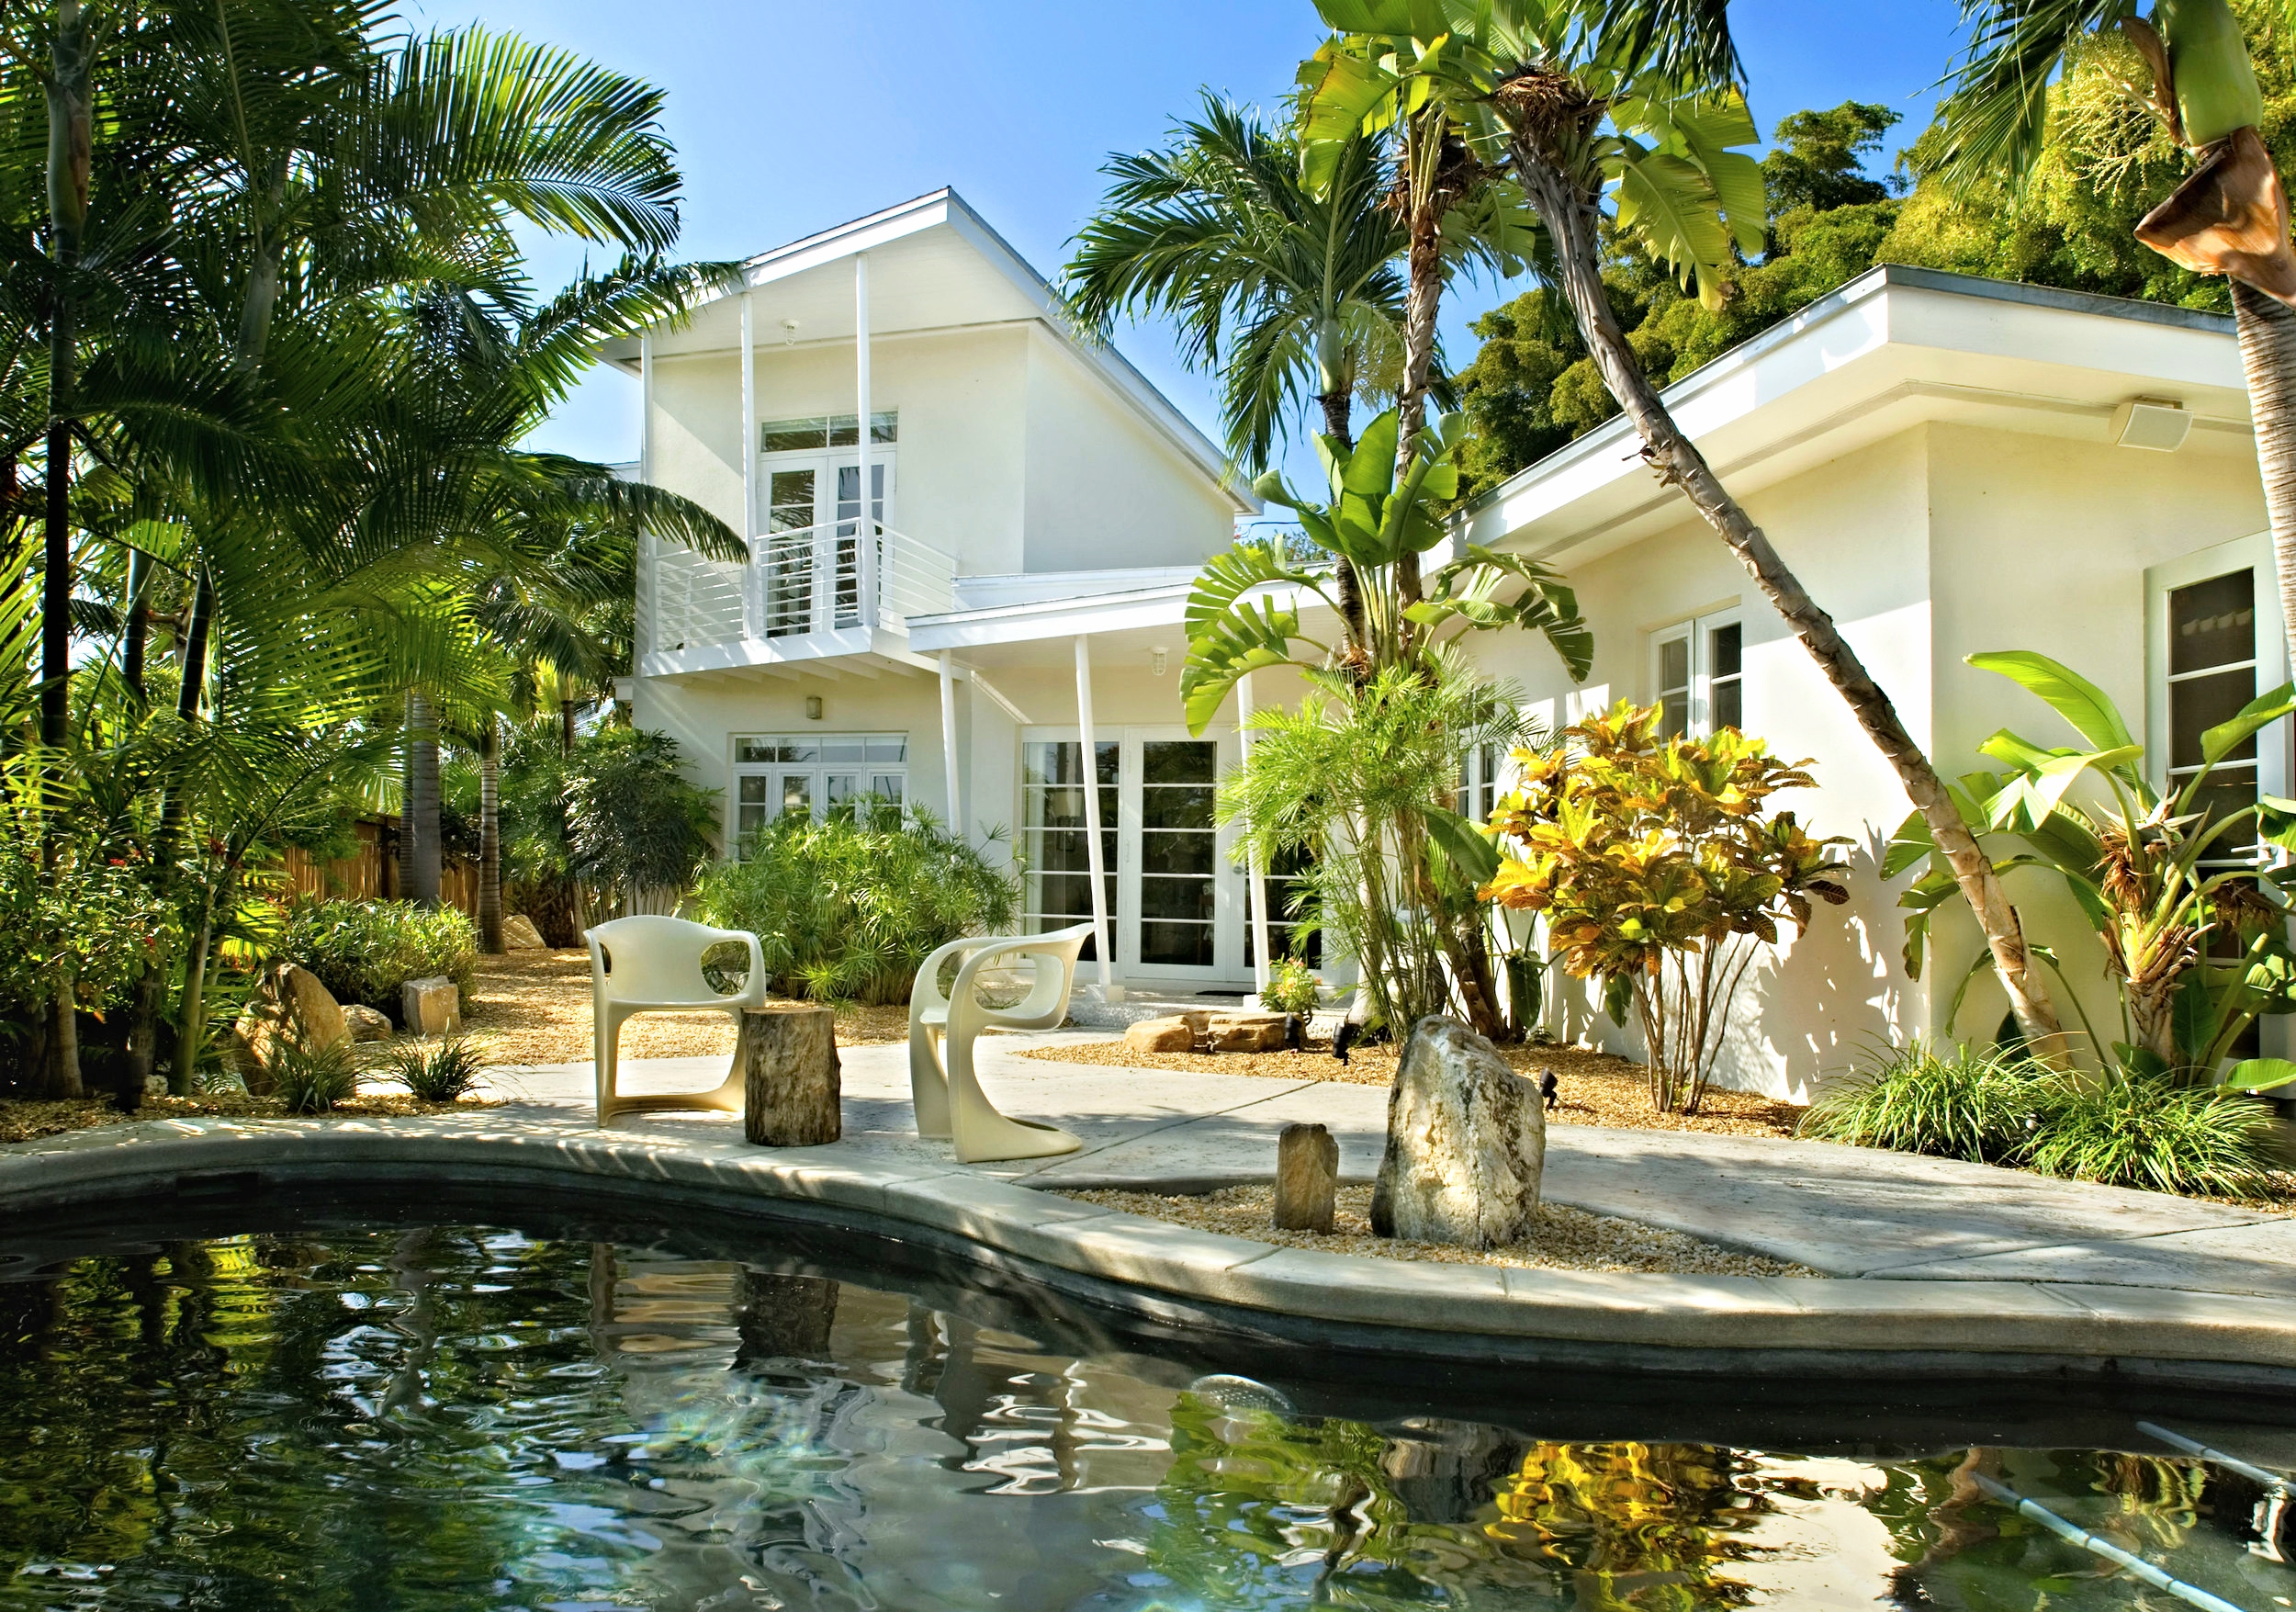 front-house-w-pool.jpg